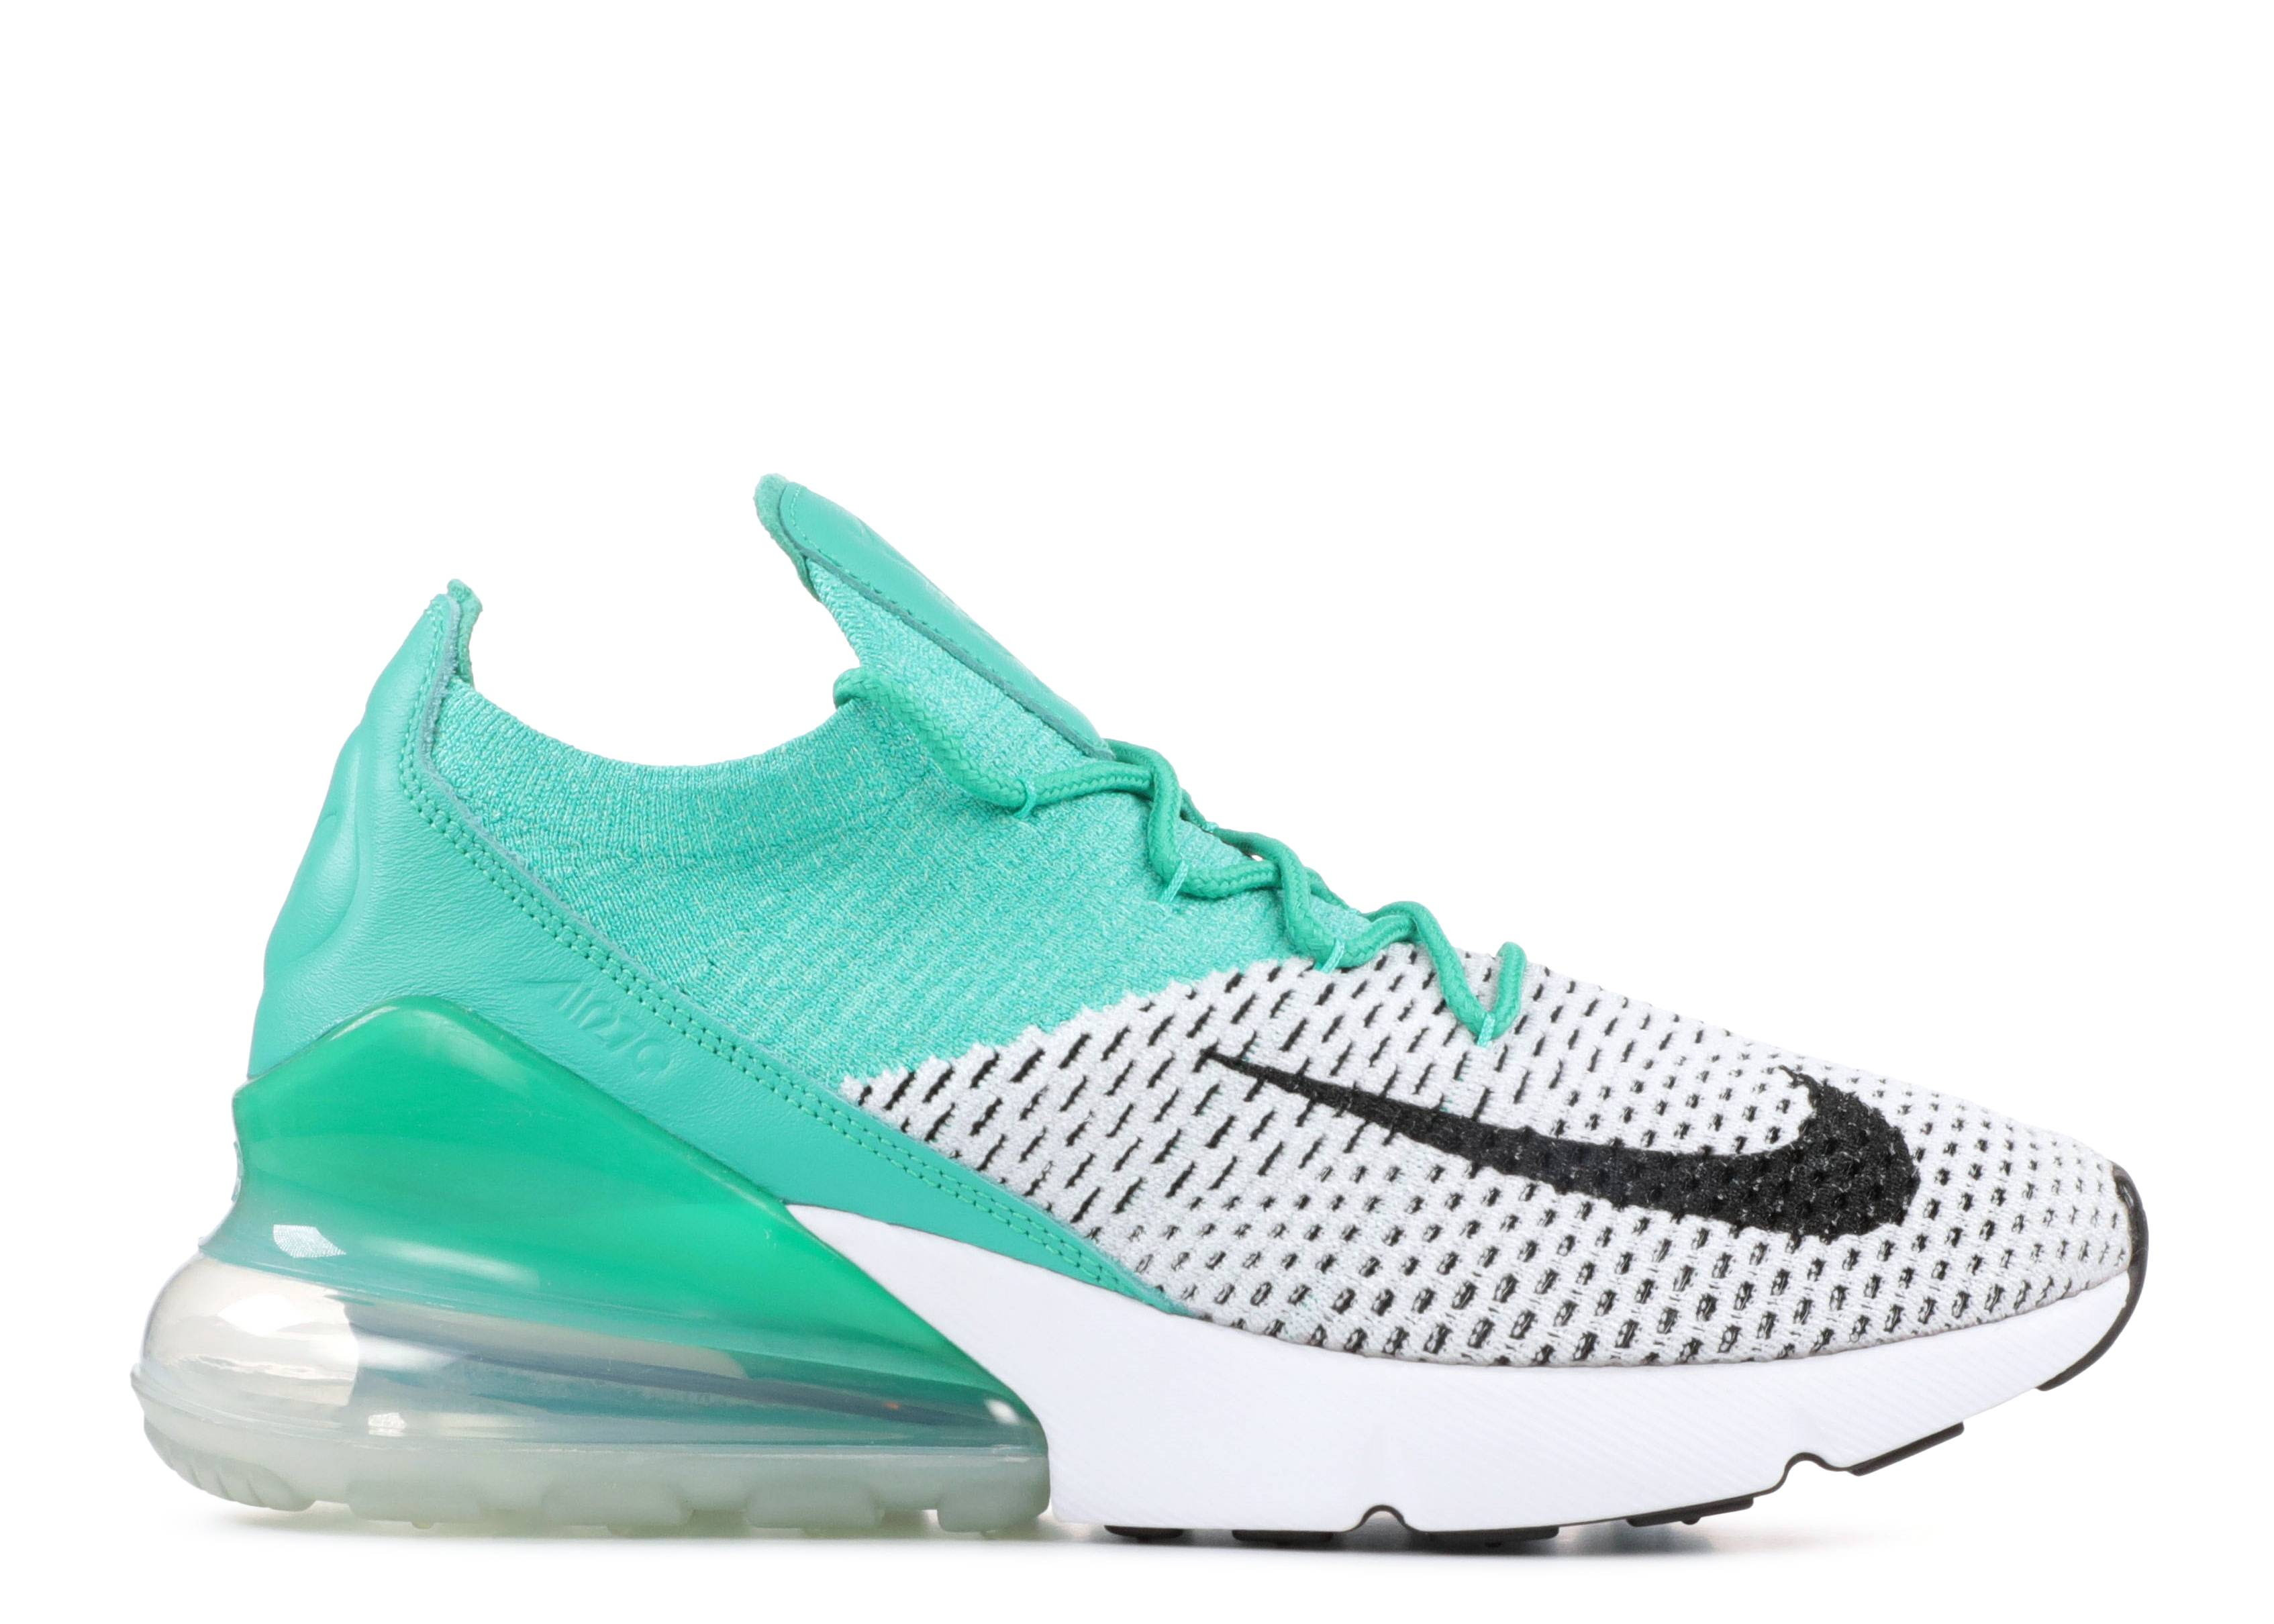 Nike Air Max 270 Flyknit W shoes white orange